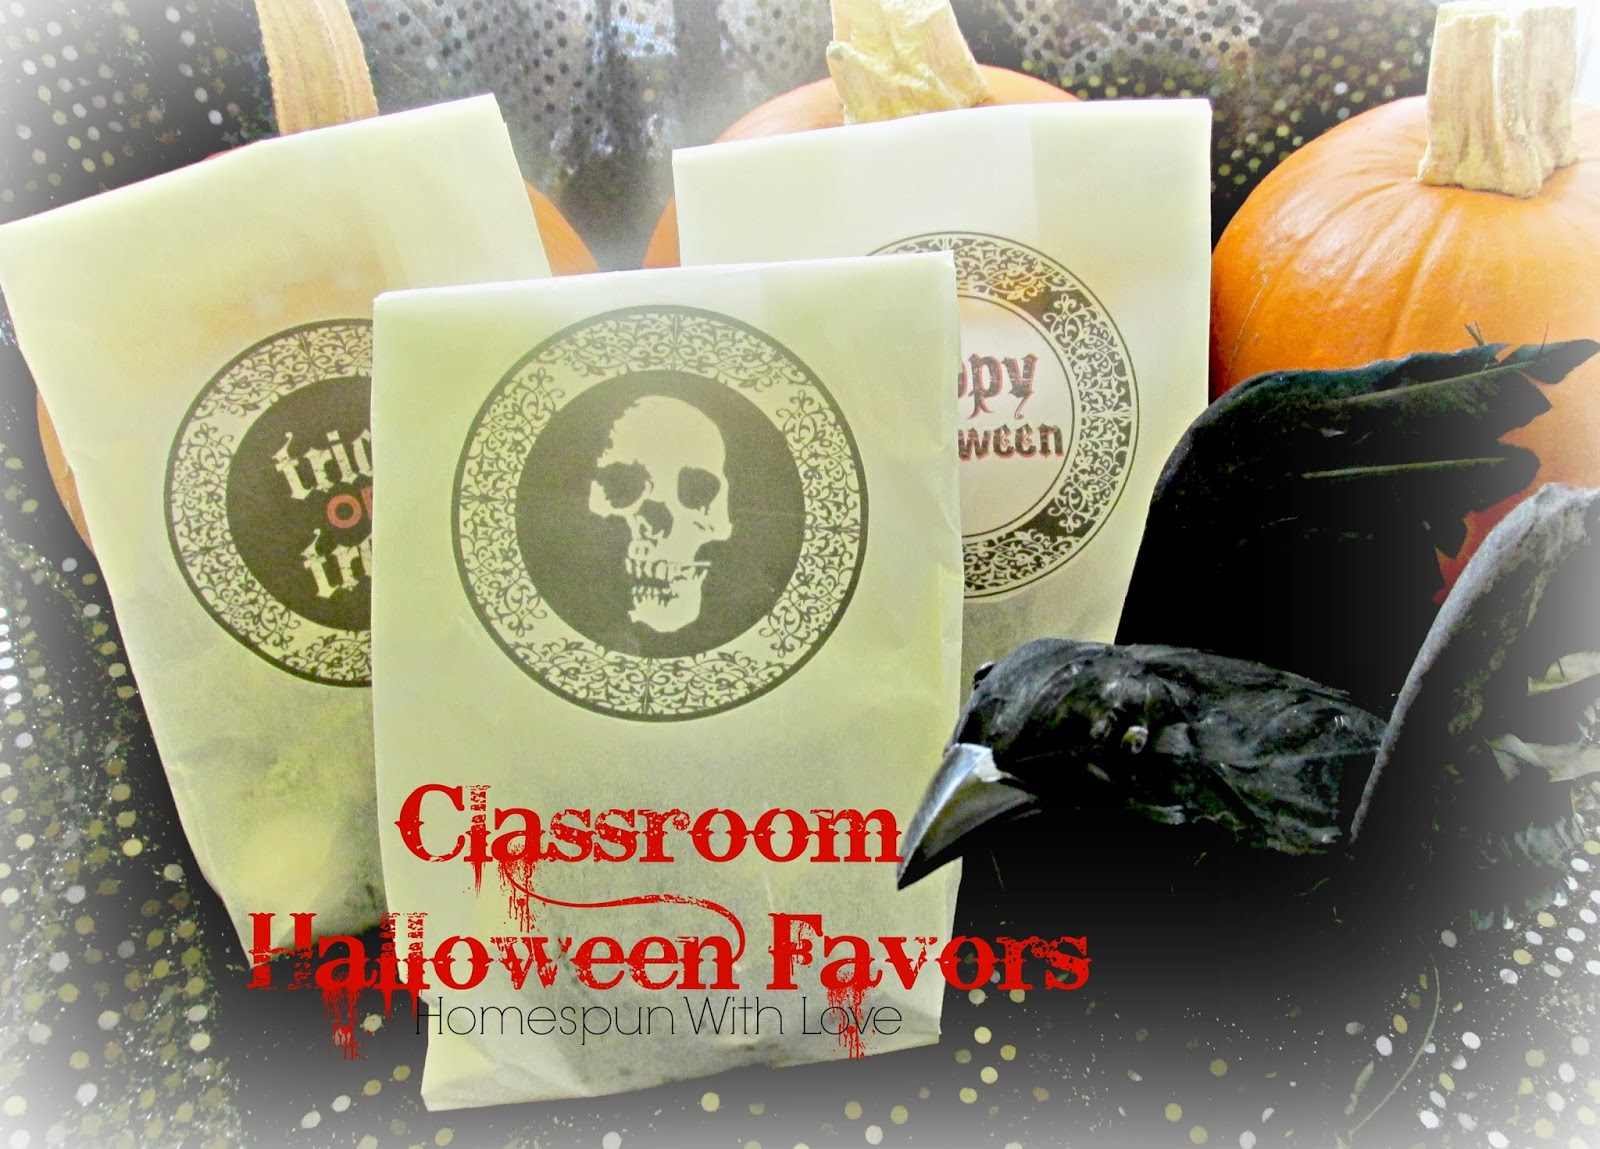 Classroom Birthday Party Favors ~ Homespun with love classroom halloween party favors